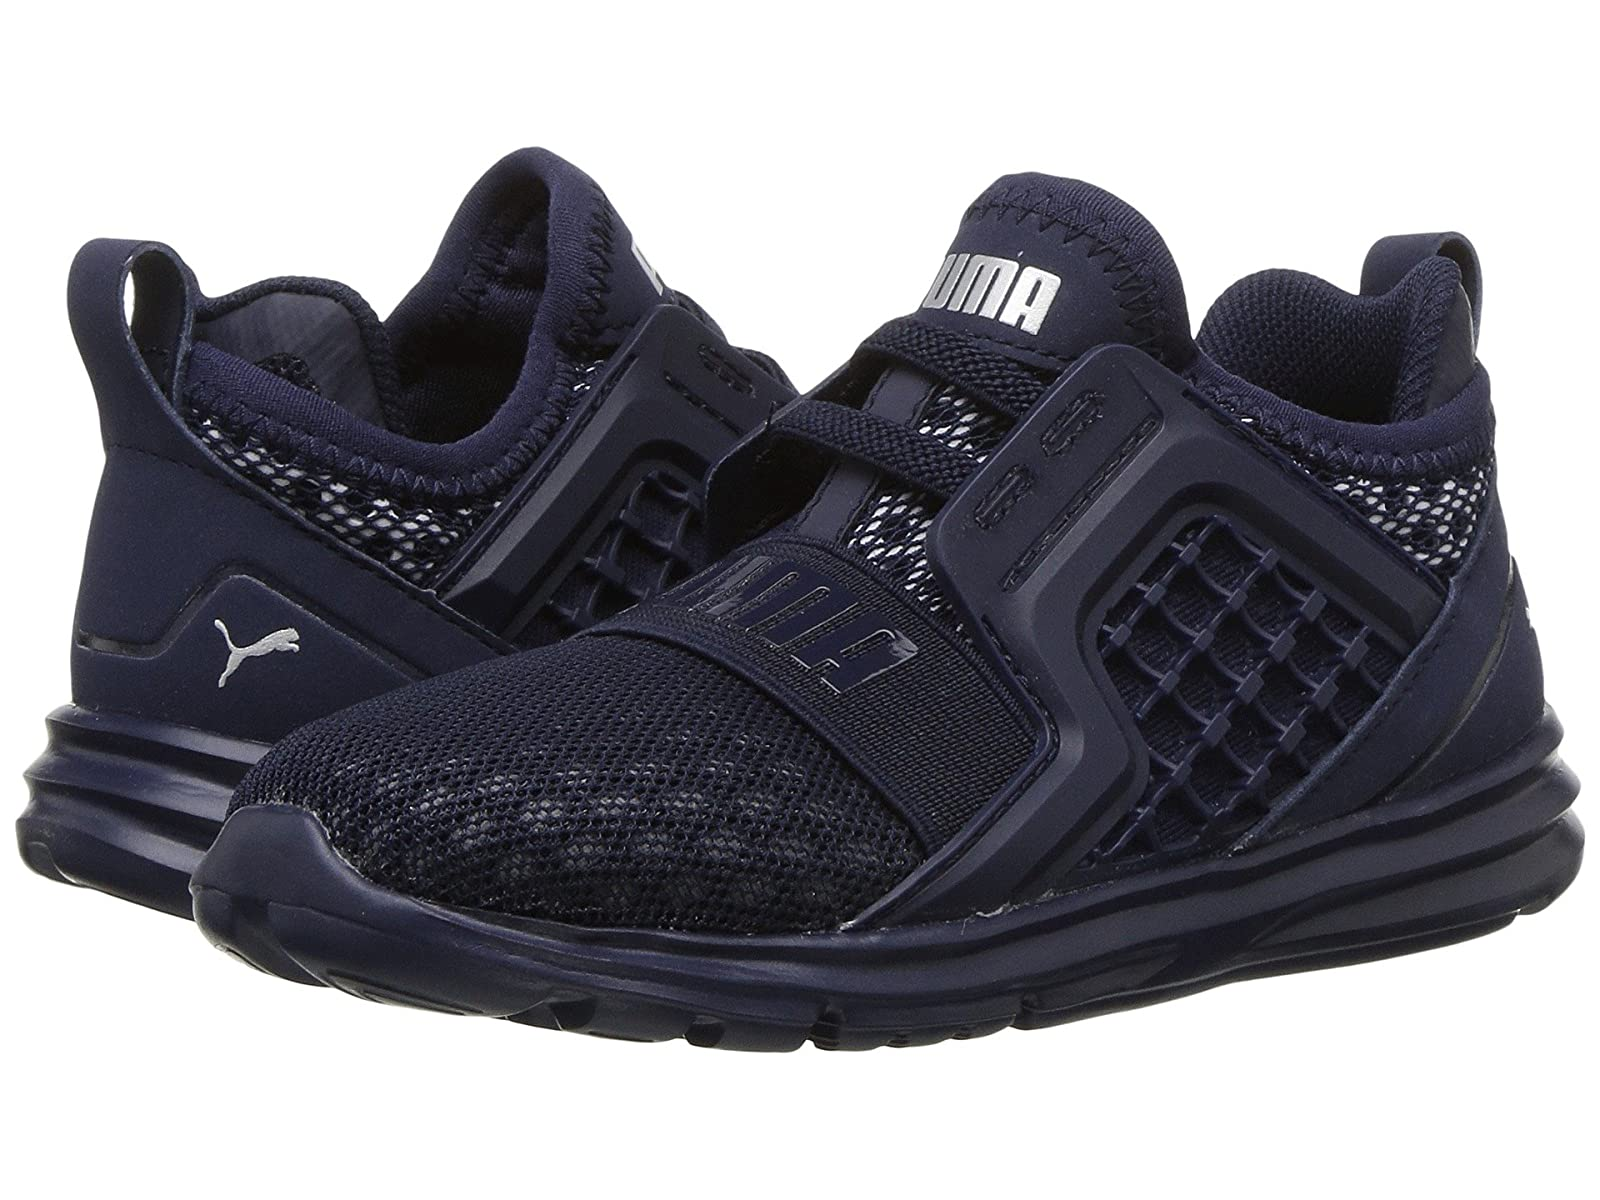 Puma Kids Limitless AC Wide (Toddler)Cheap and distinctive eye-catching shoes